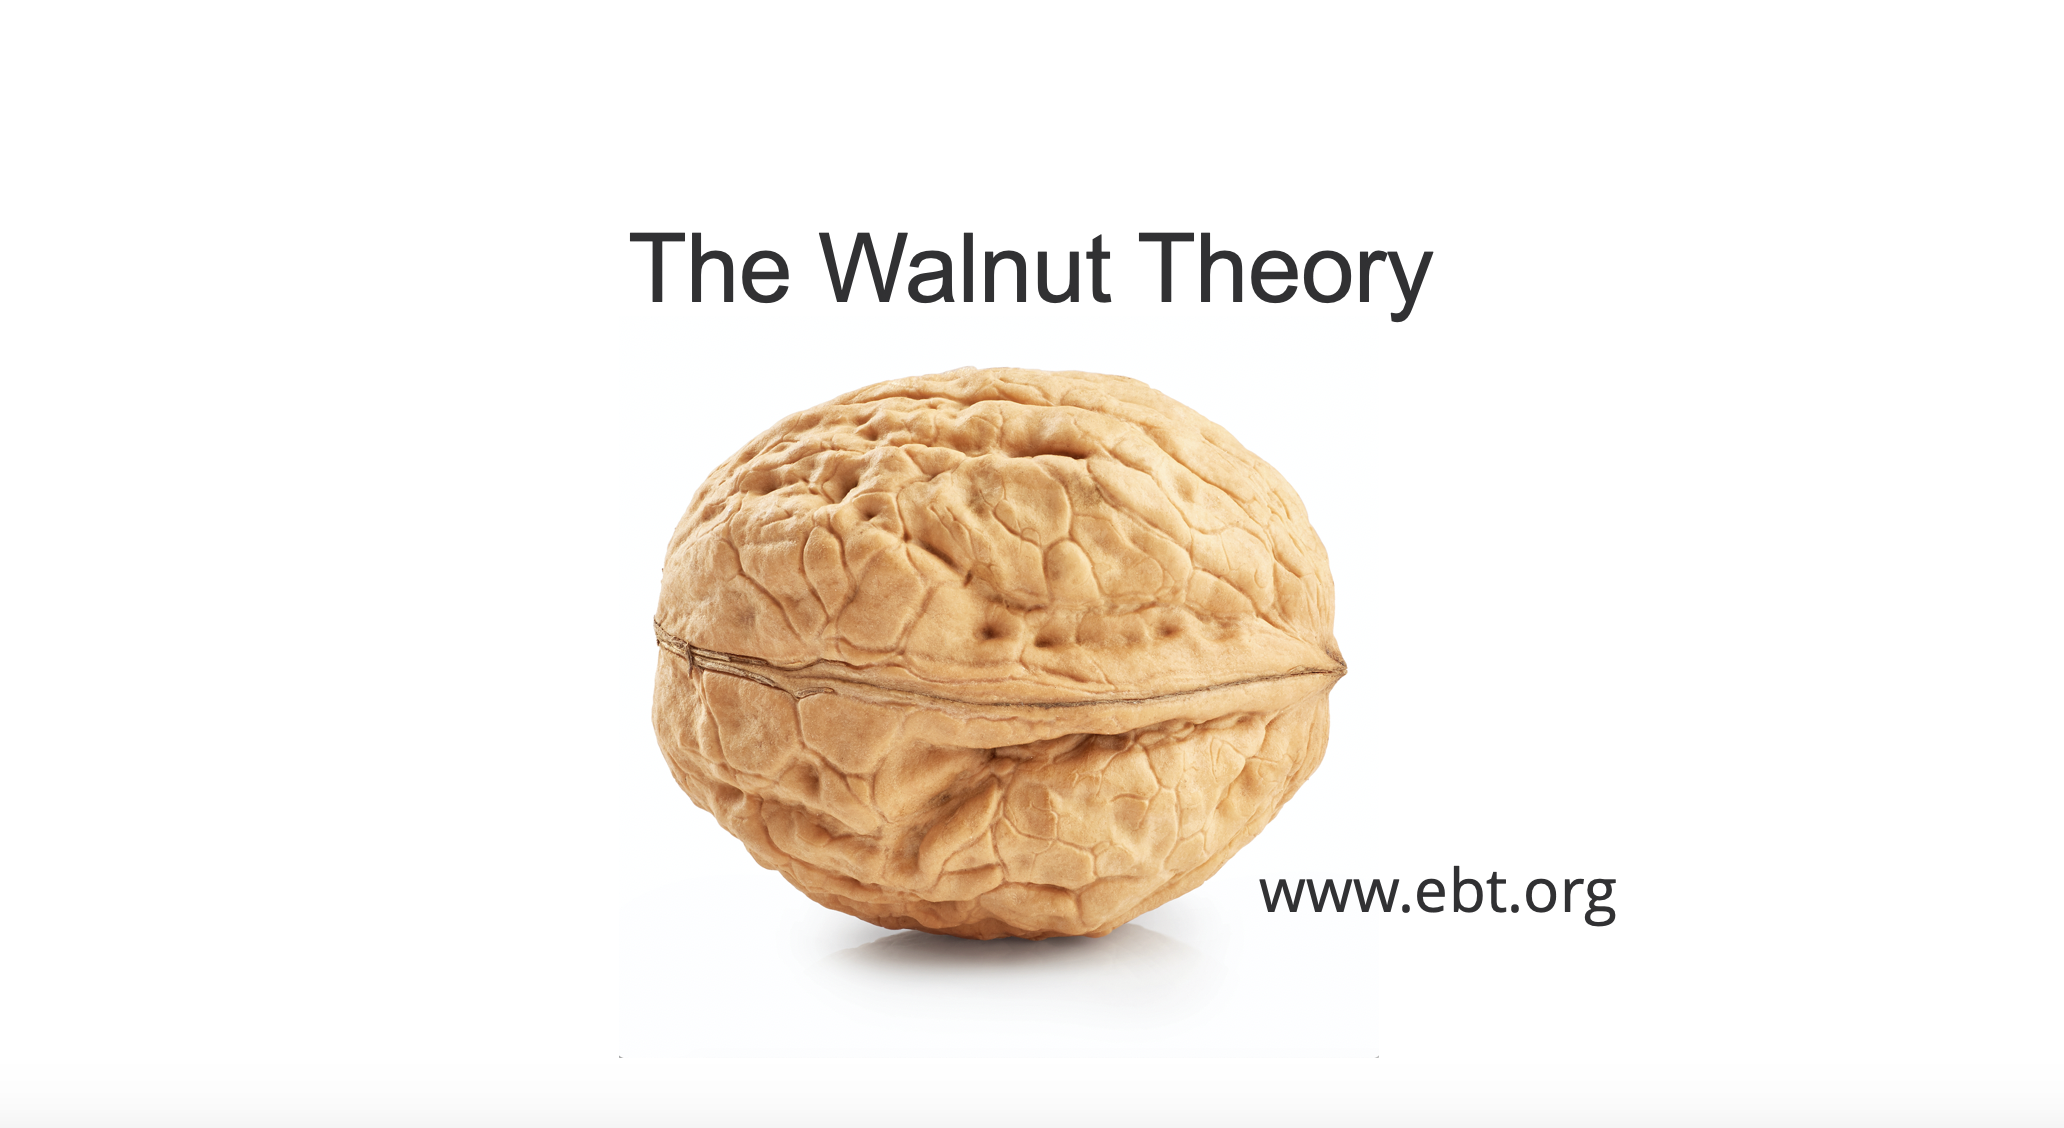 We All Have a Walnut